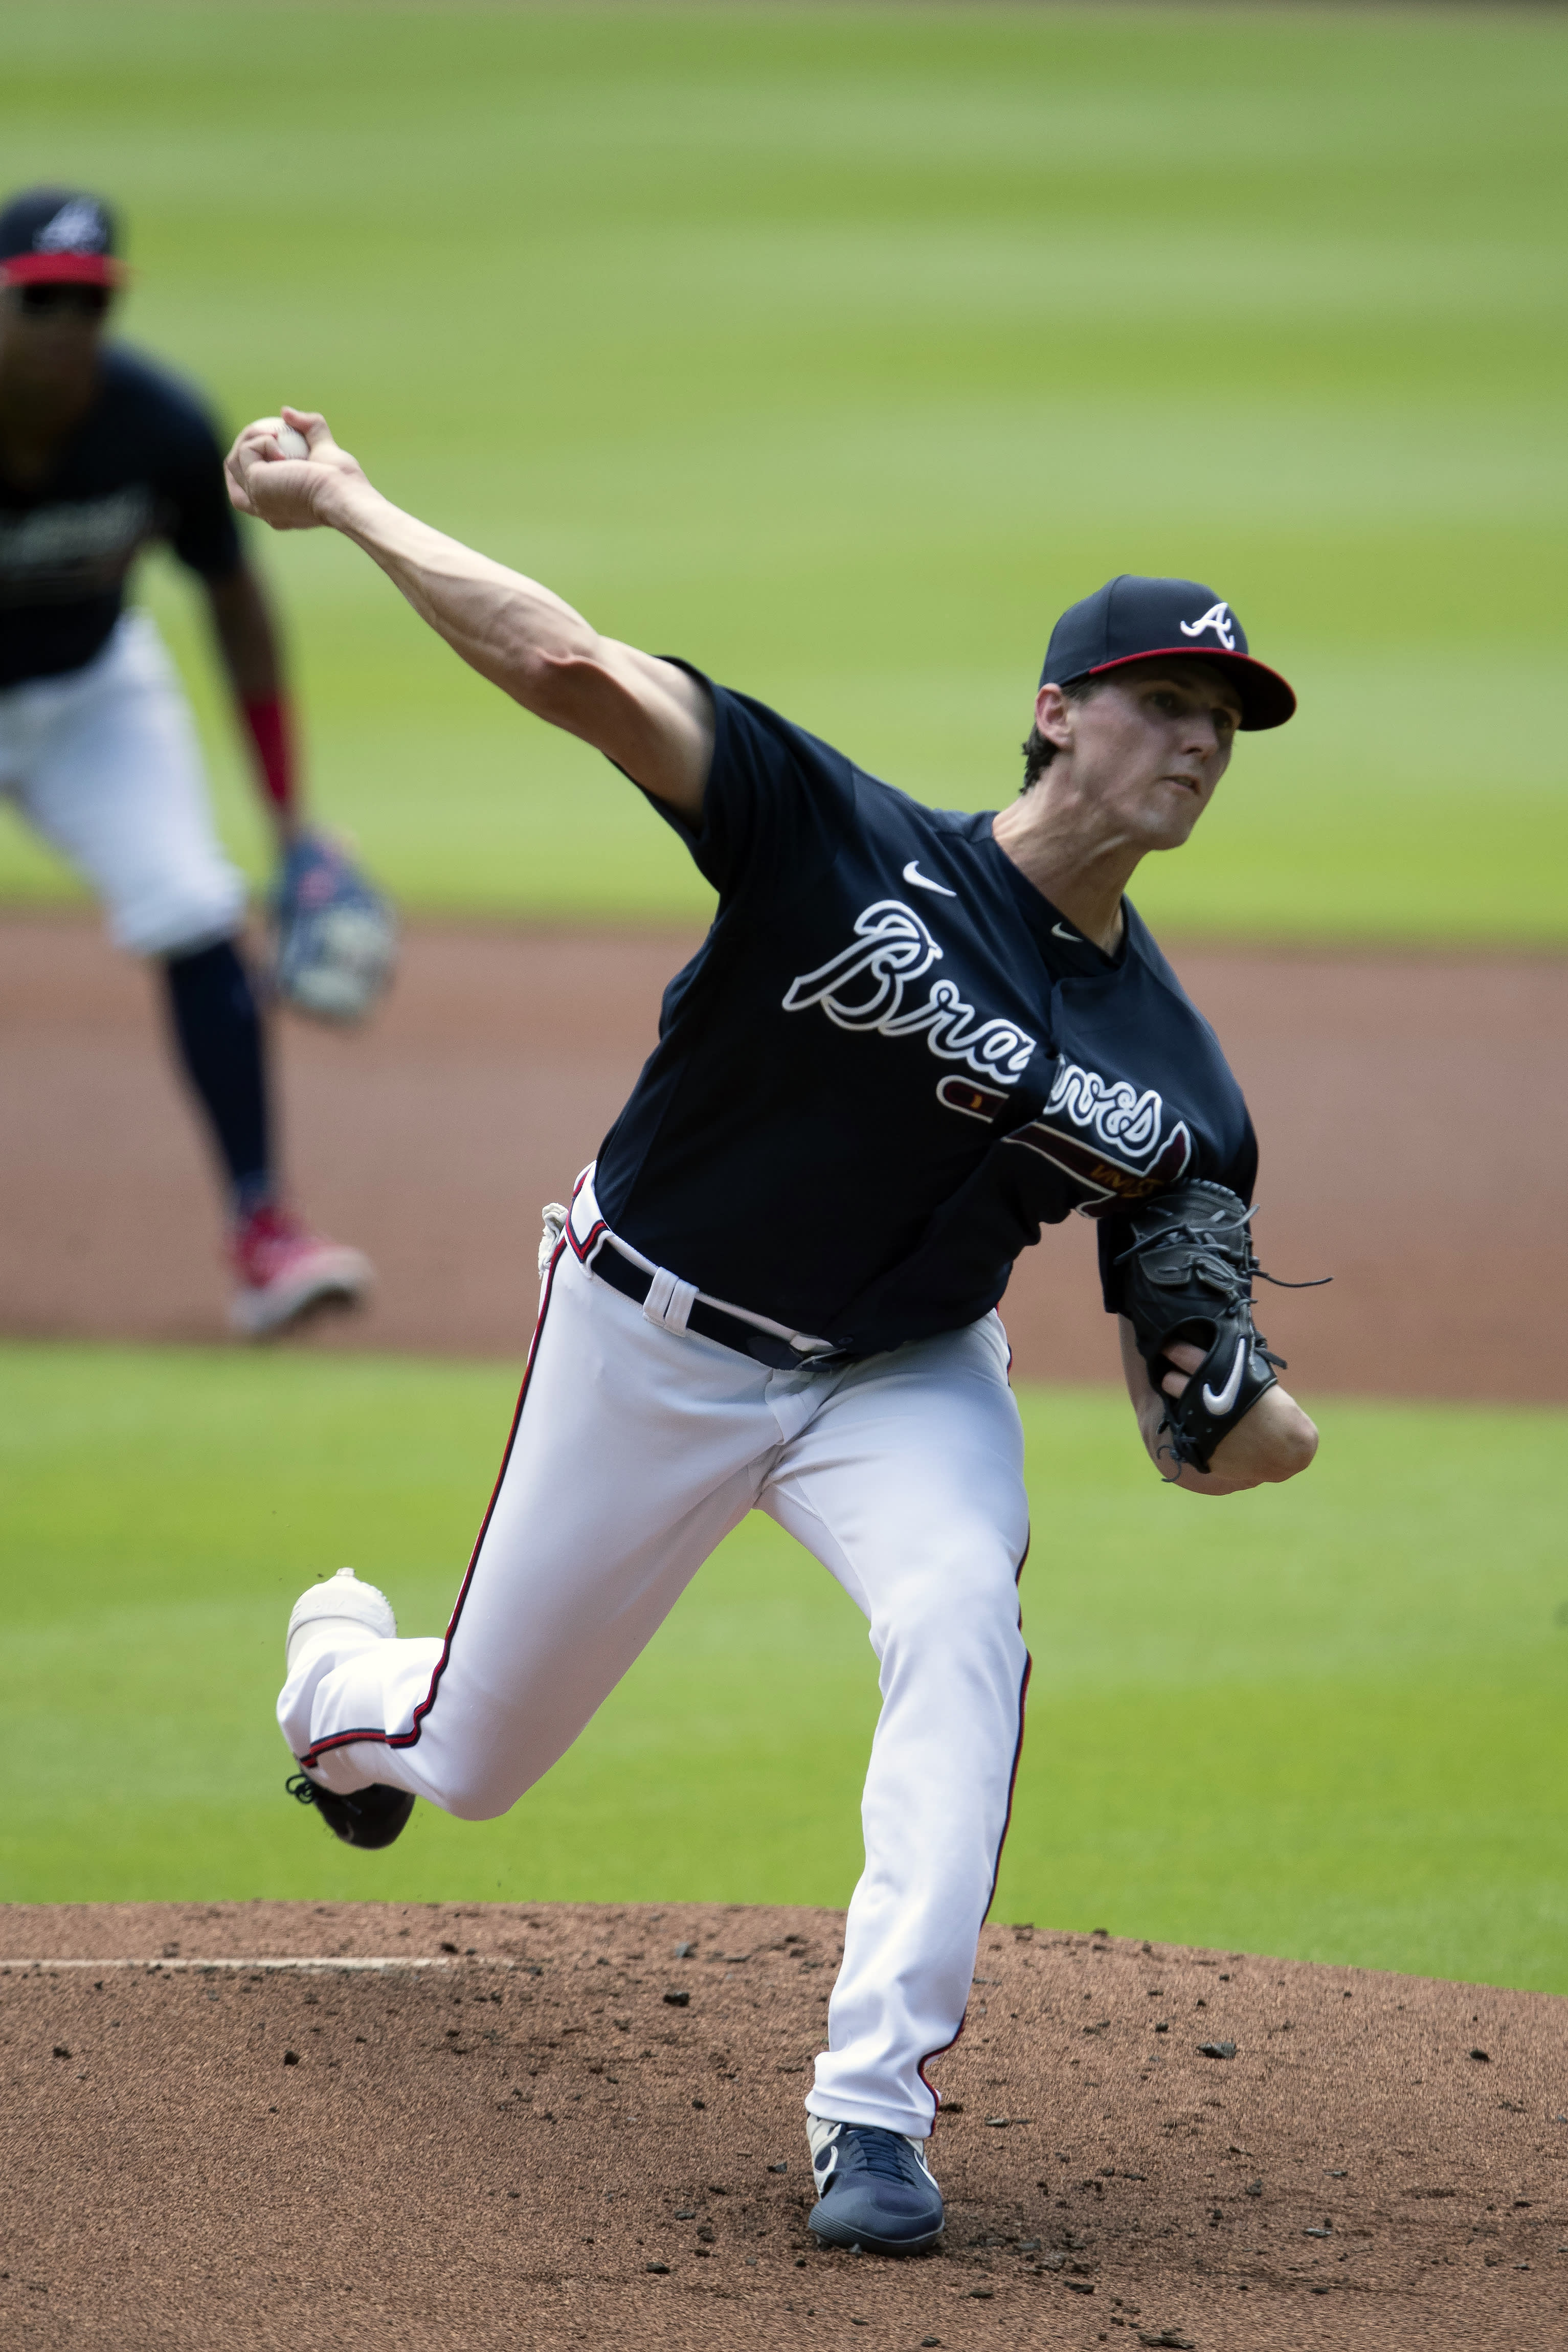 Atlanta Braves starting pitcher Kyle Wright (30) delivers during an intra squad baseball game Thursday, July 16, 2020, in Atlanta. (AP Photo/John Bazemore)